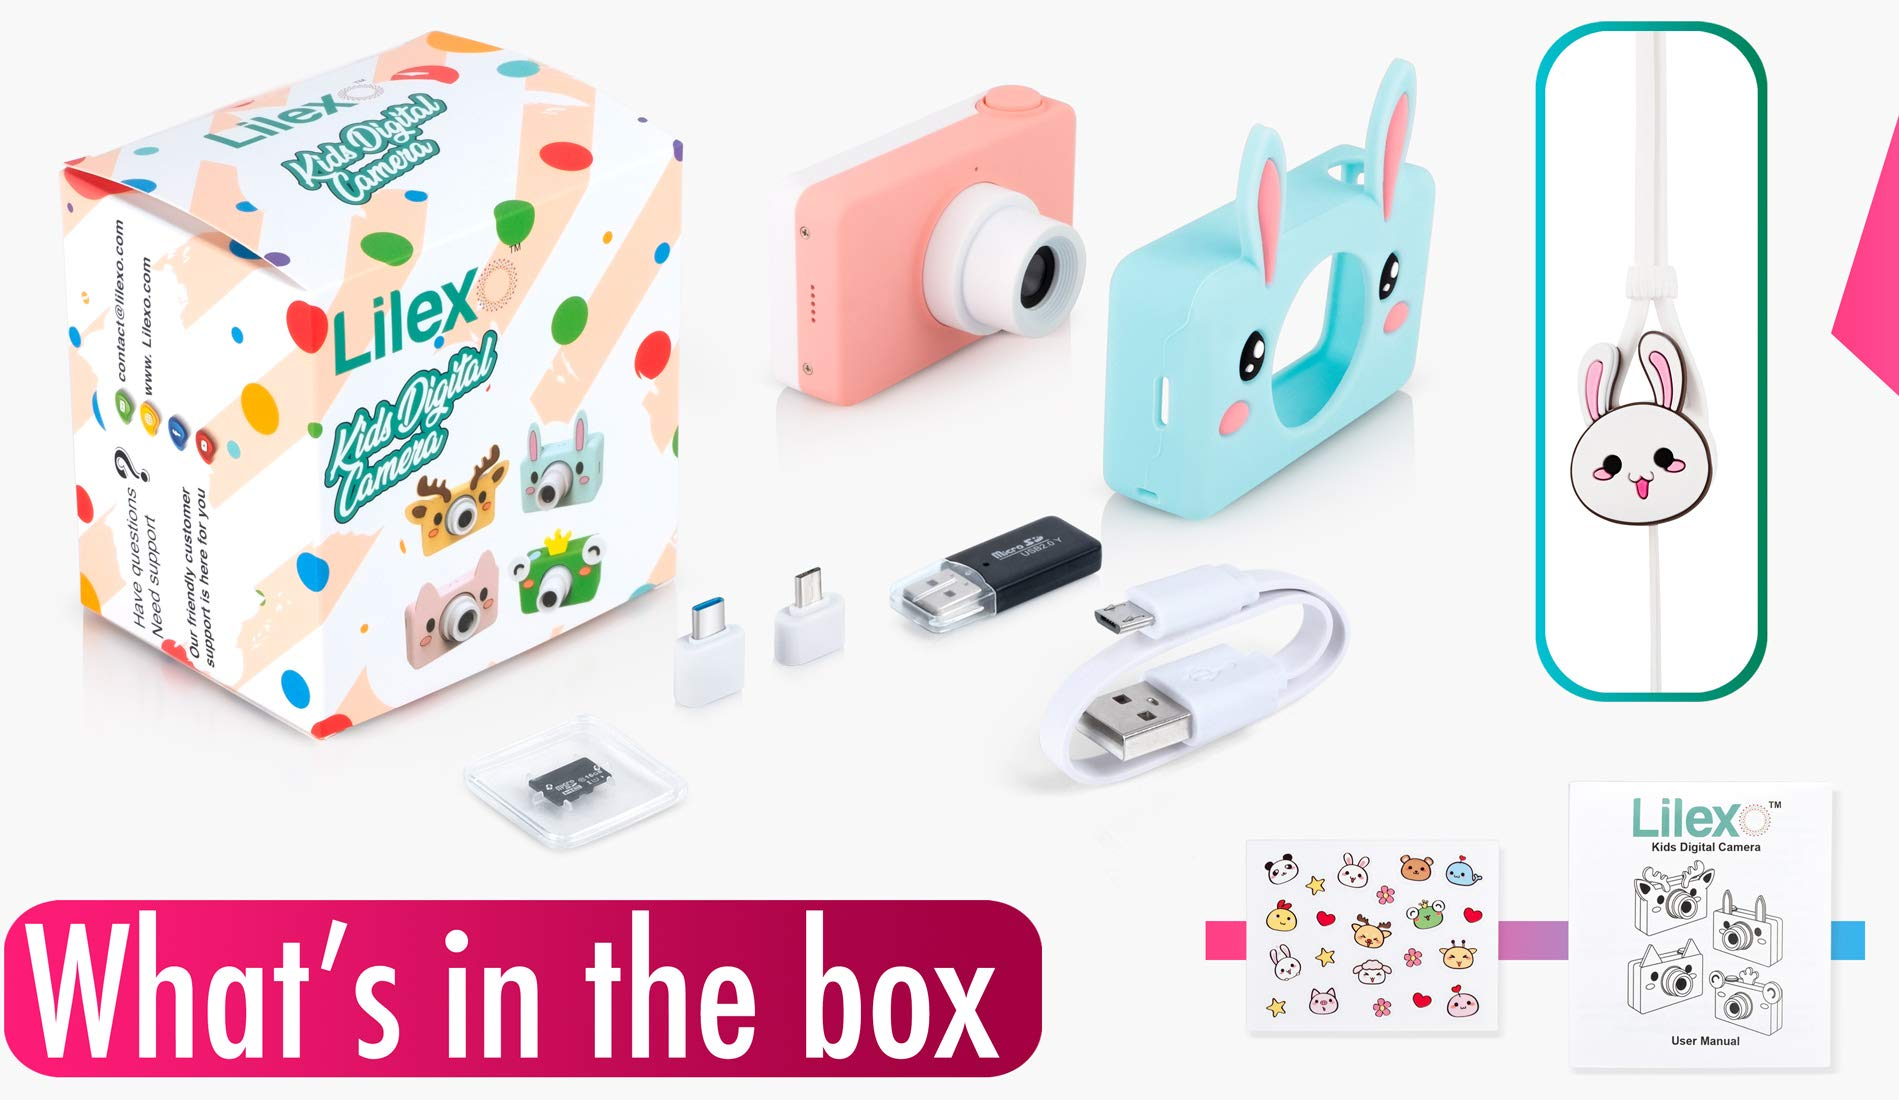 Lilexo Kids Camera - Children Shockproof Mini Digital Video Camcorder for Girls Gifts, Anti Slip Grip with Animal Silicone Cover for Extra Protection - 16GB Memory Card Included (Blue Rabbit) by Lilexo (Image #9)